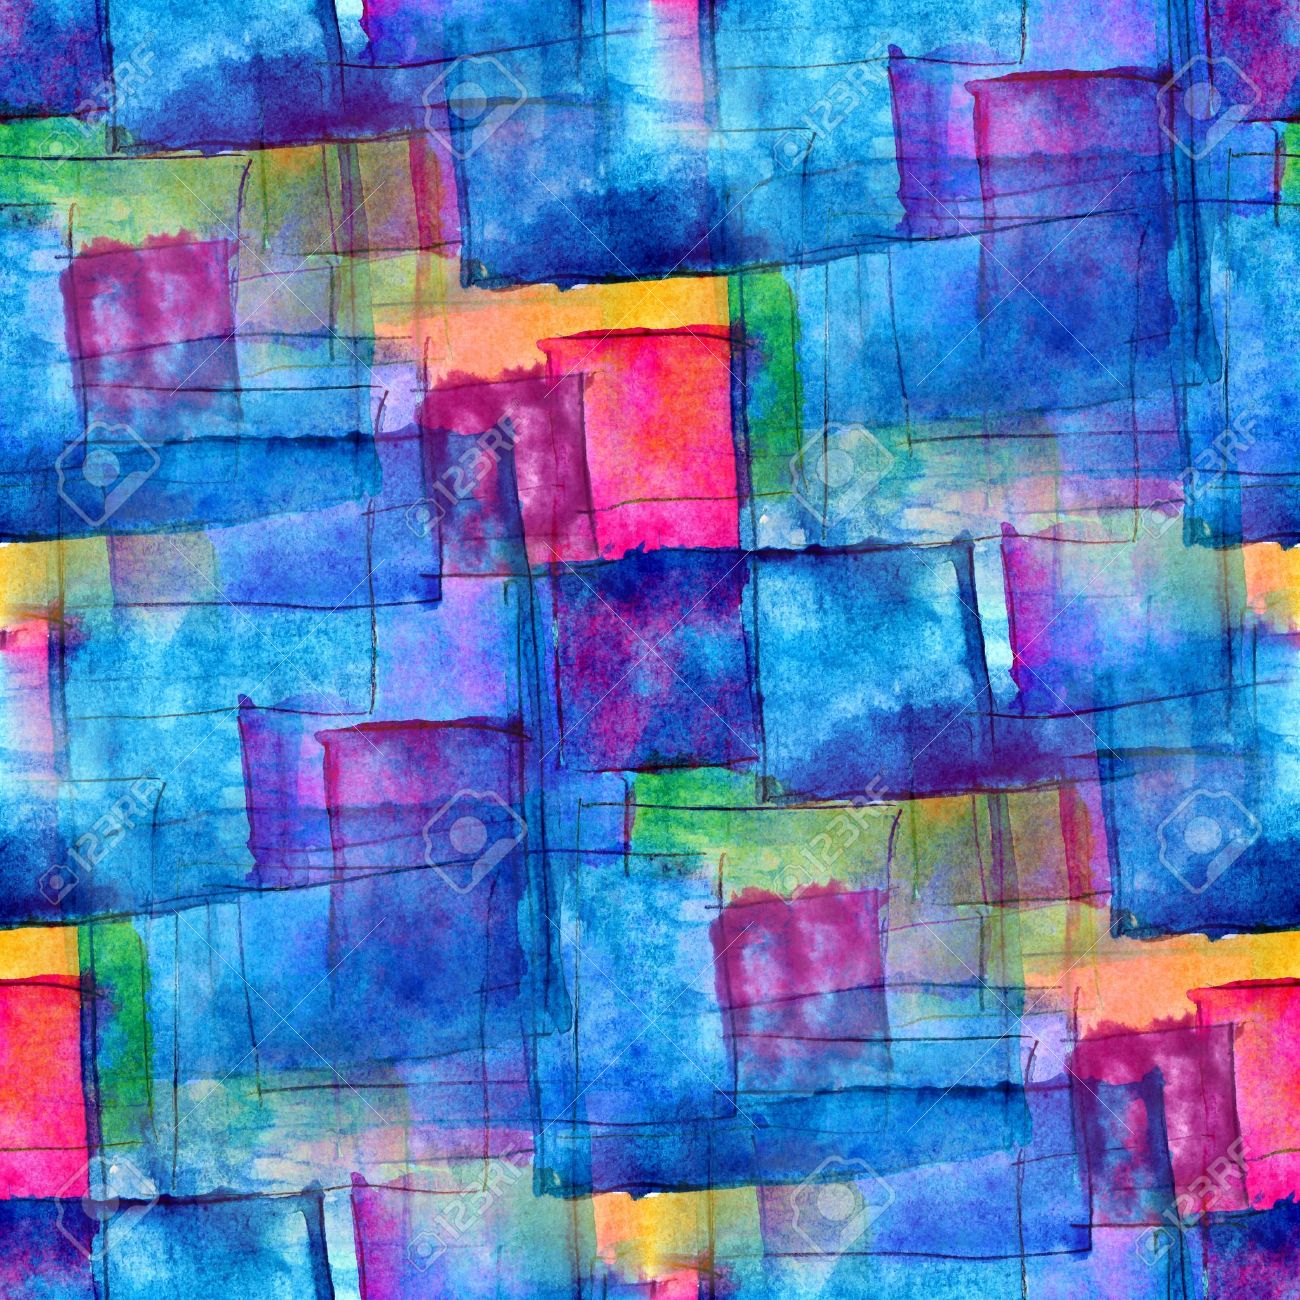 Seamless Blue Cubism Abstract Art Texture Watercolor Wallpaper Background Stock Photo